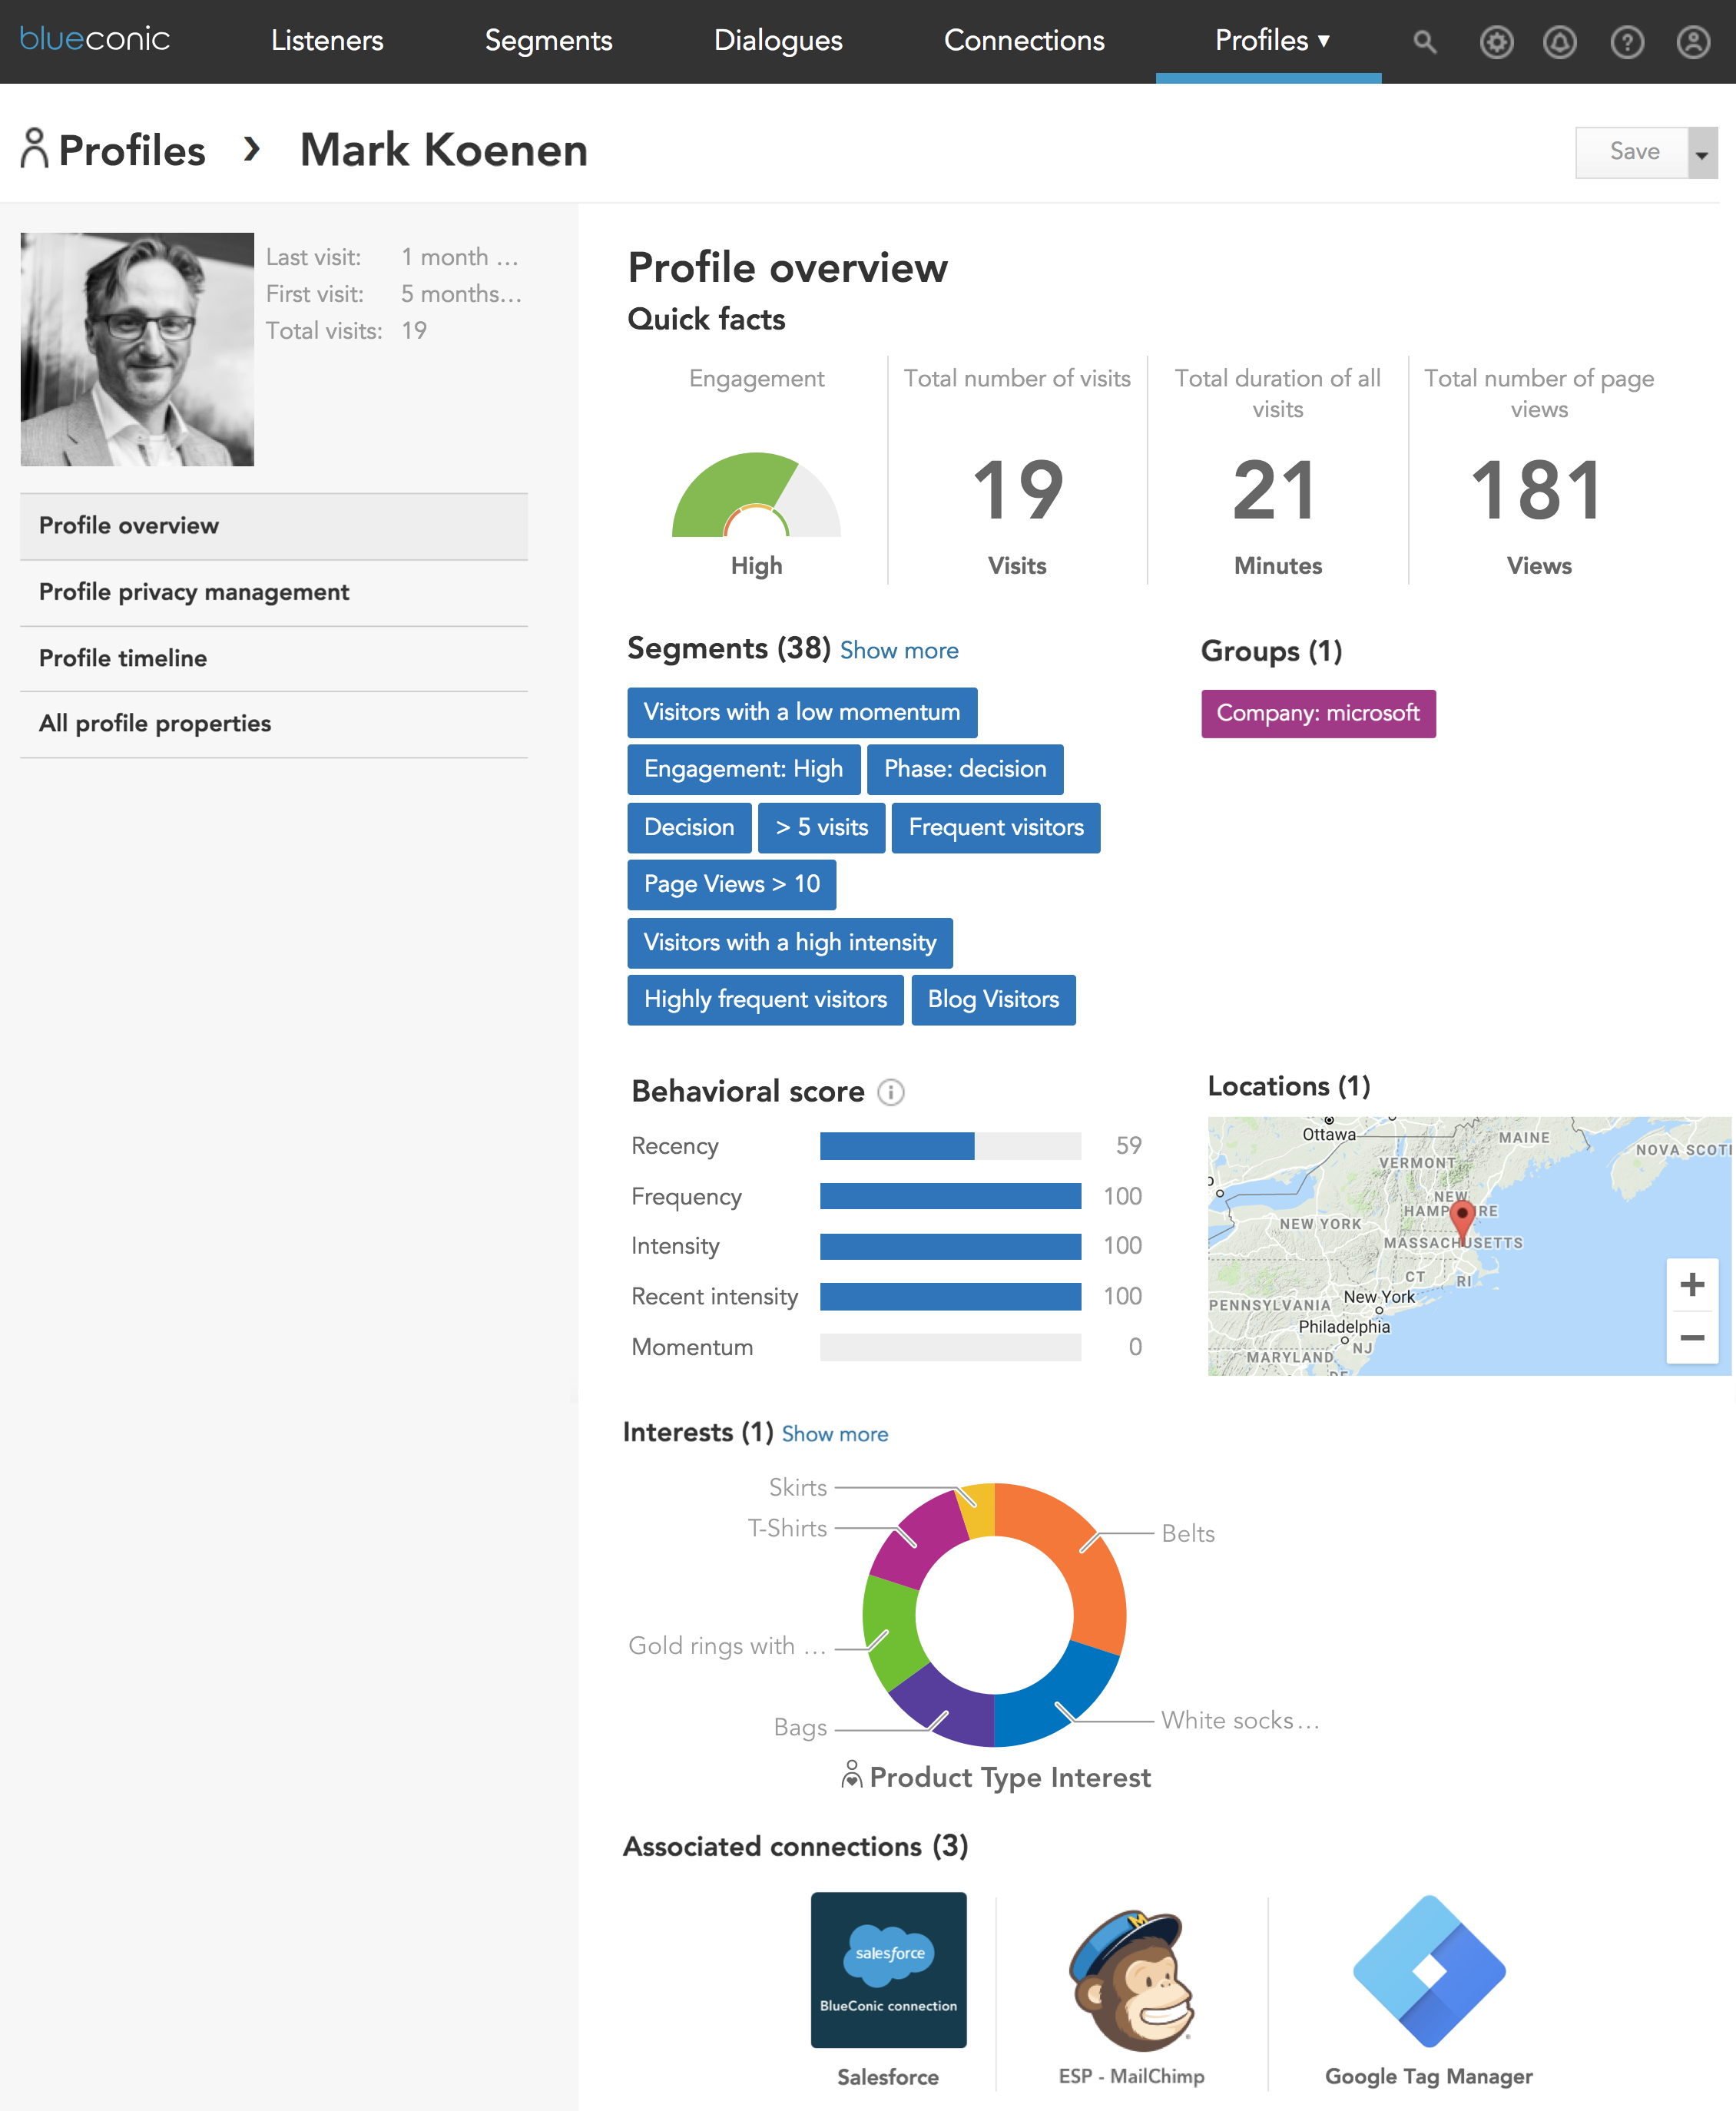 How to see detailed information and behavioral profile data in BlueConic marketing customer profiles